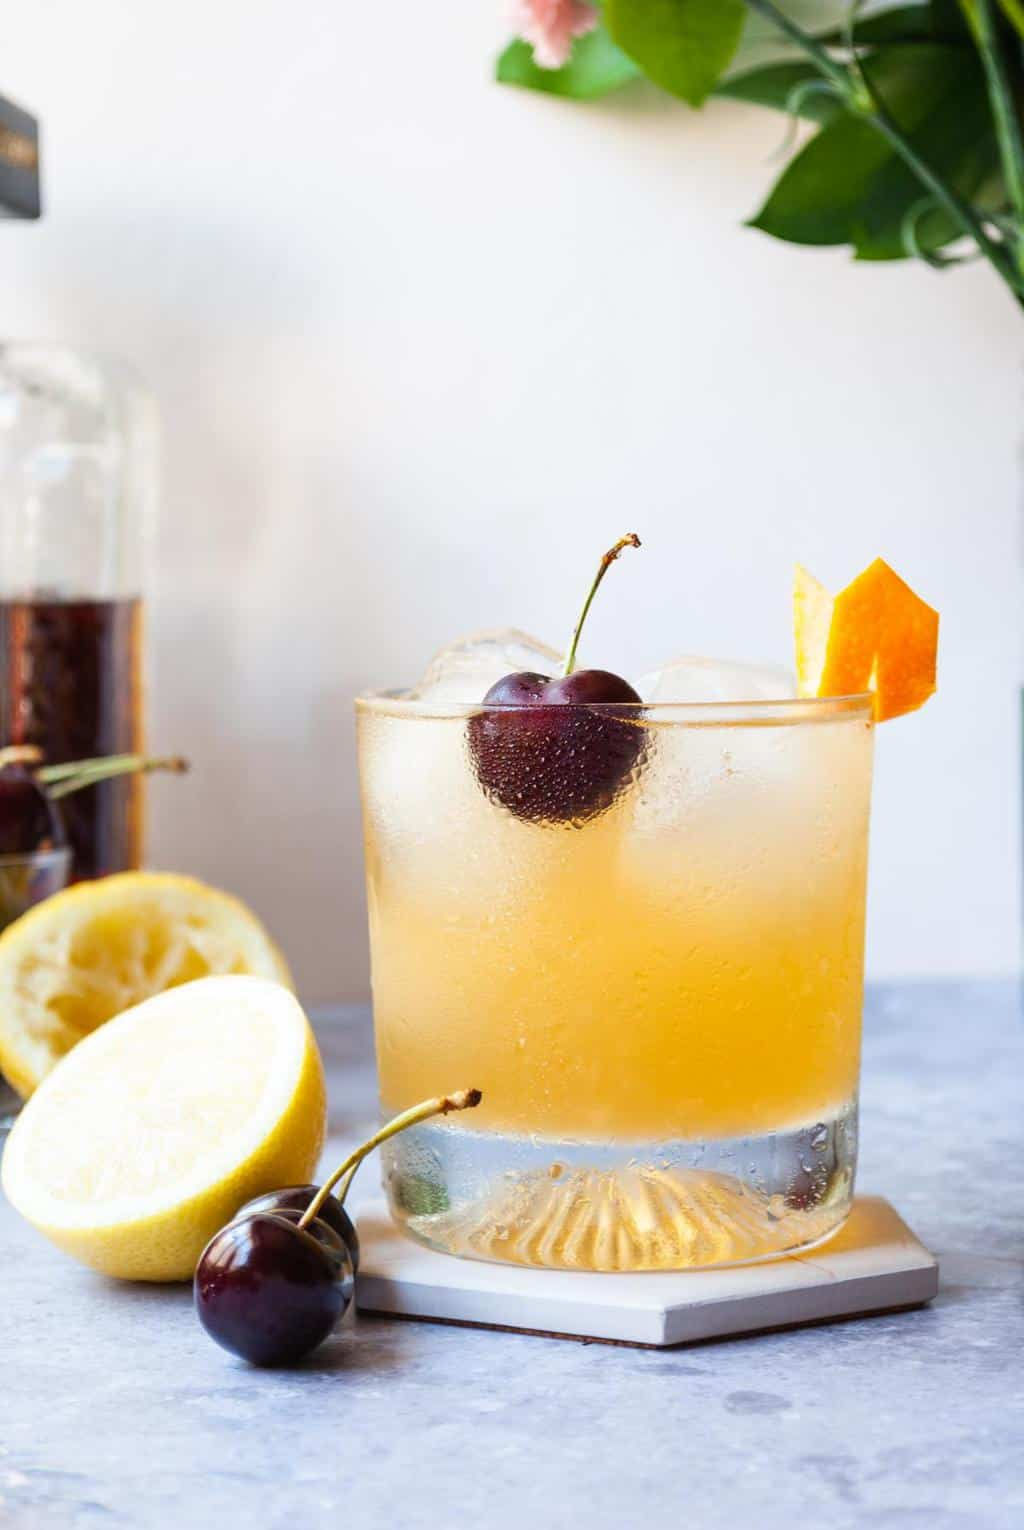 Homemade Amarreto Sour Recipe - Close up shot of the cocktail drink